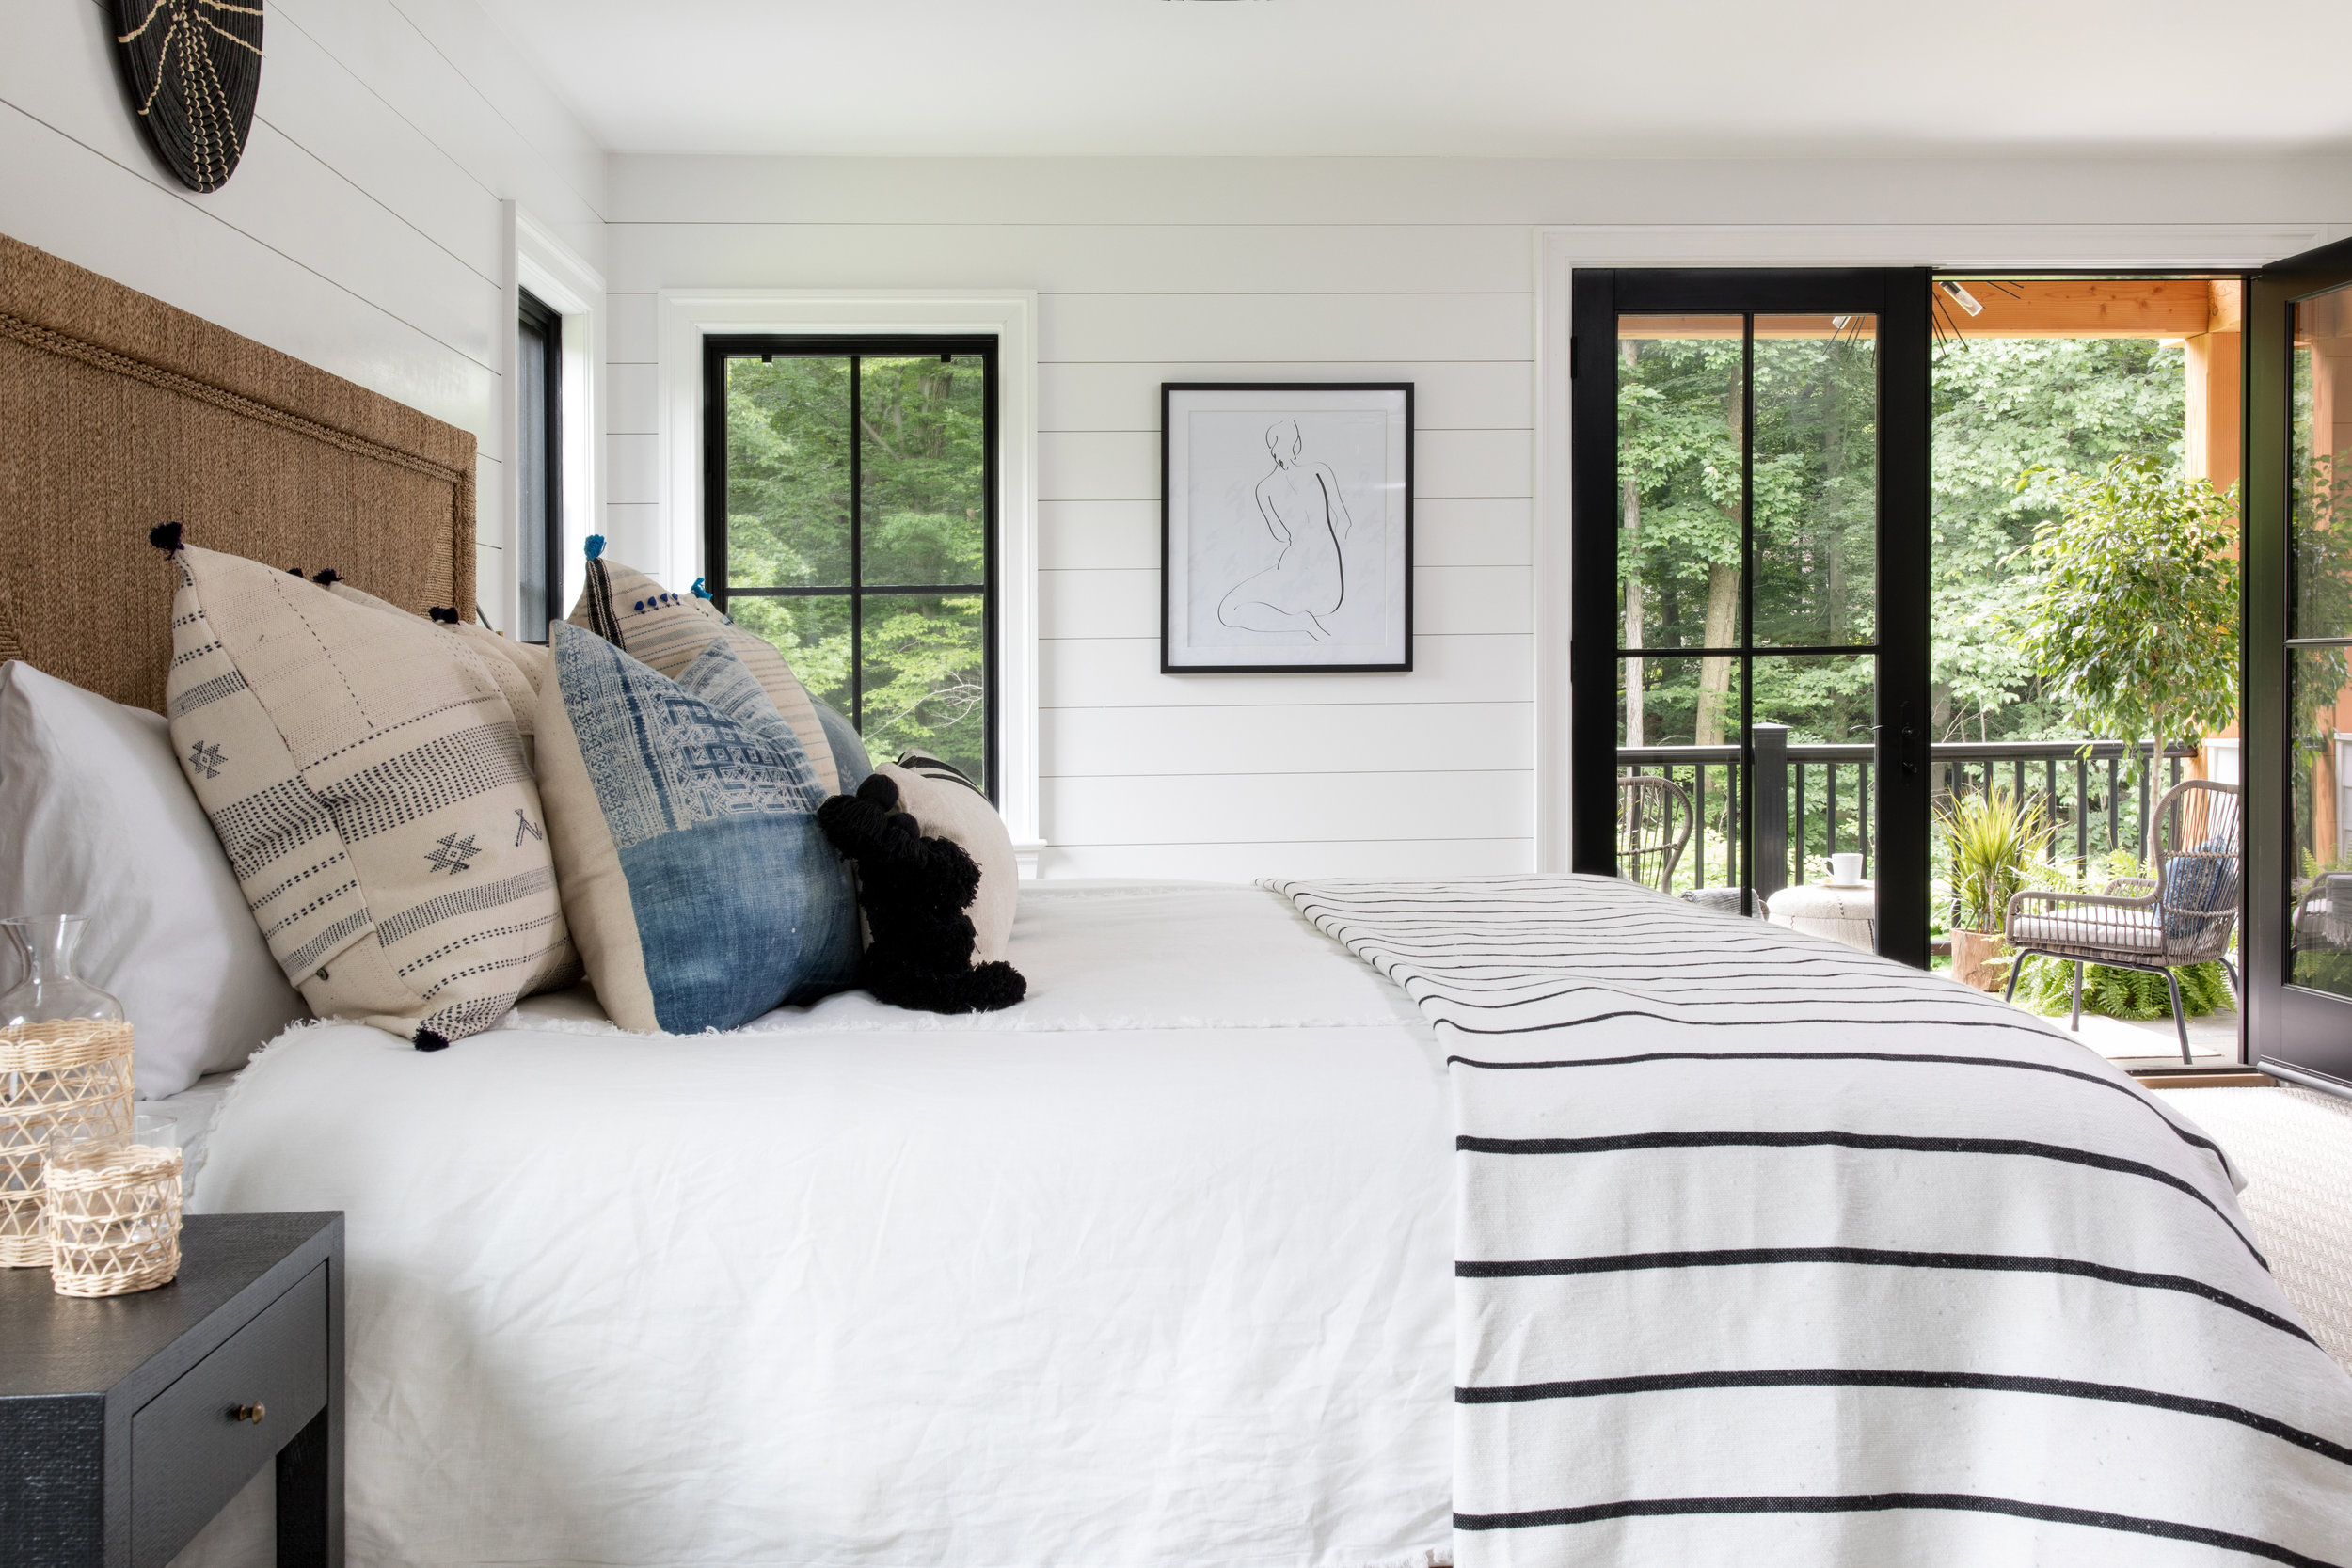 House Tour-  I Love This House's Modern Twist on Classic Traditional Style 31.jpeg